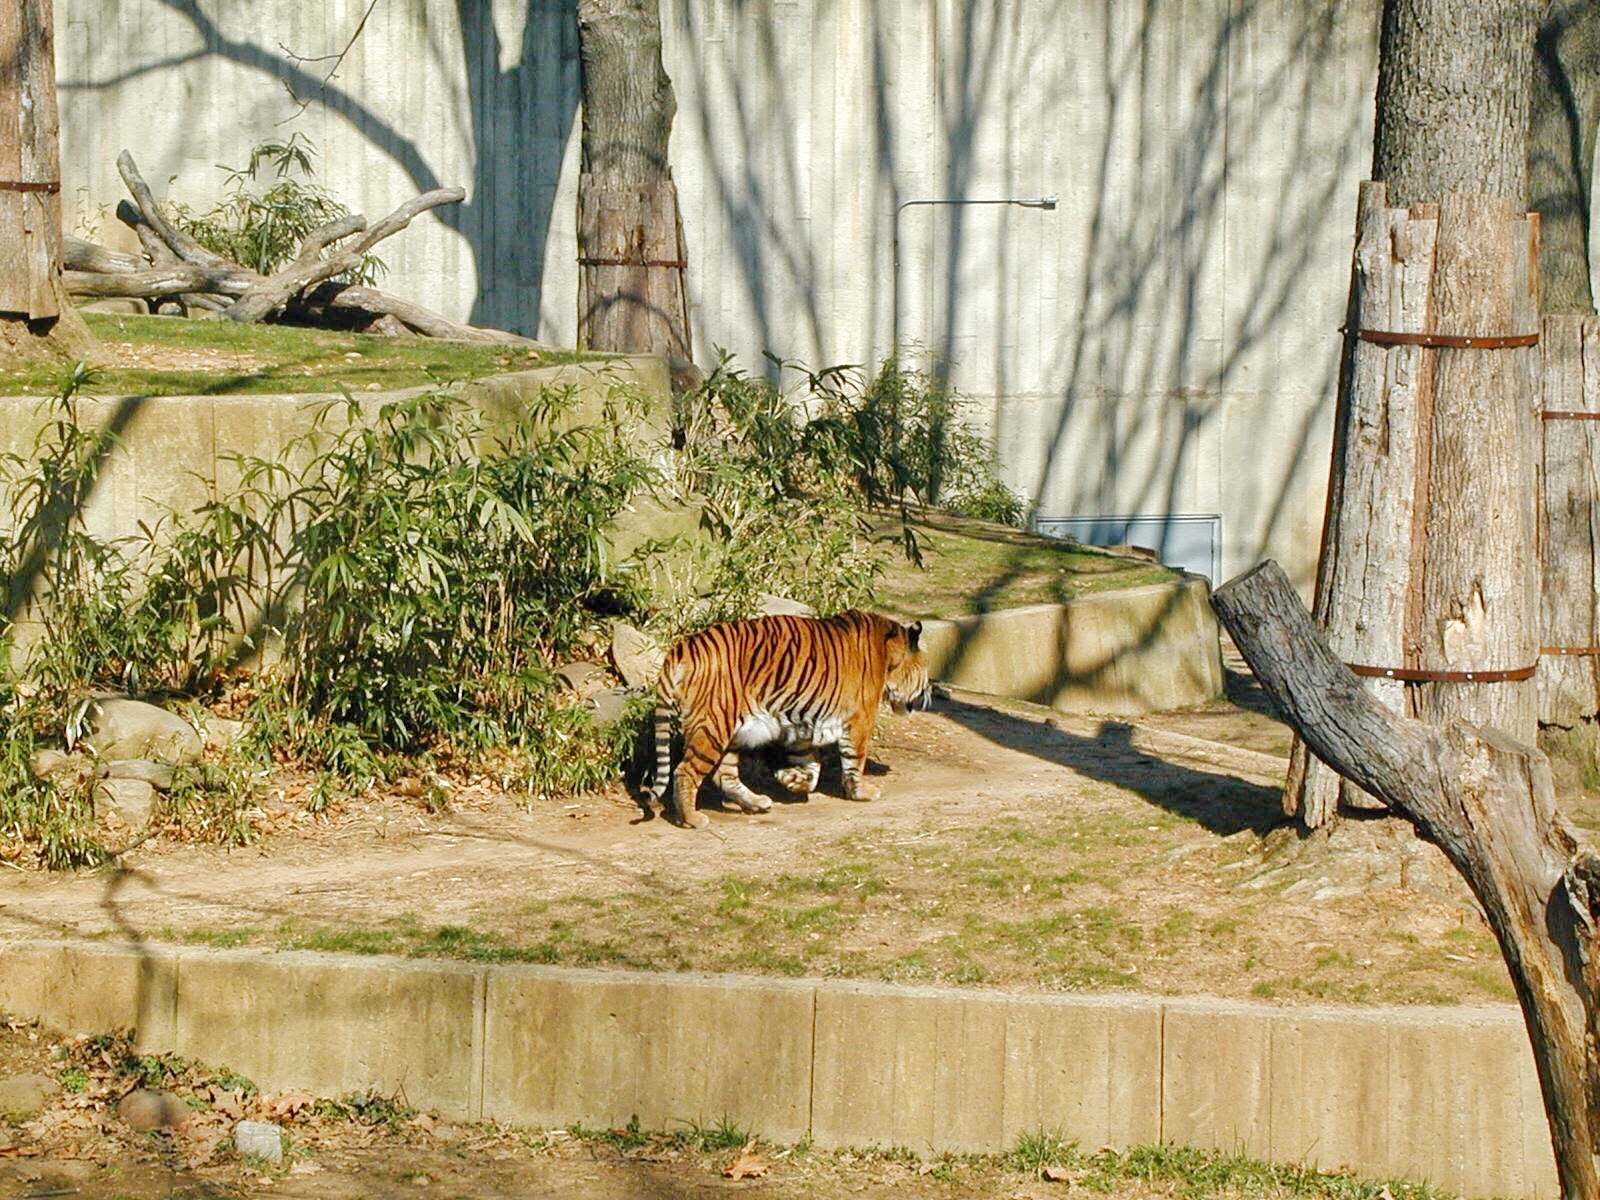 Guide to the Smithsonian: Tiger in the National Zoo